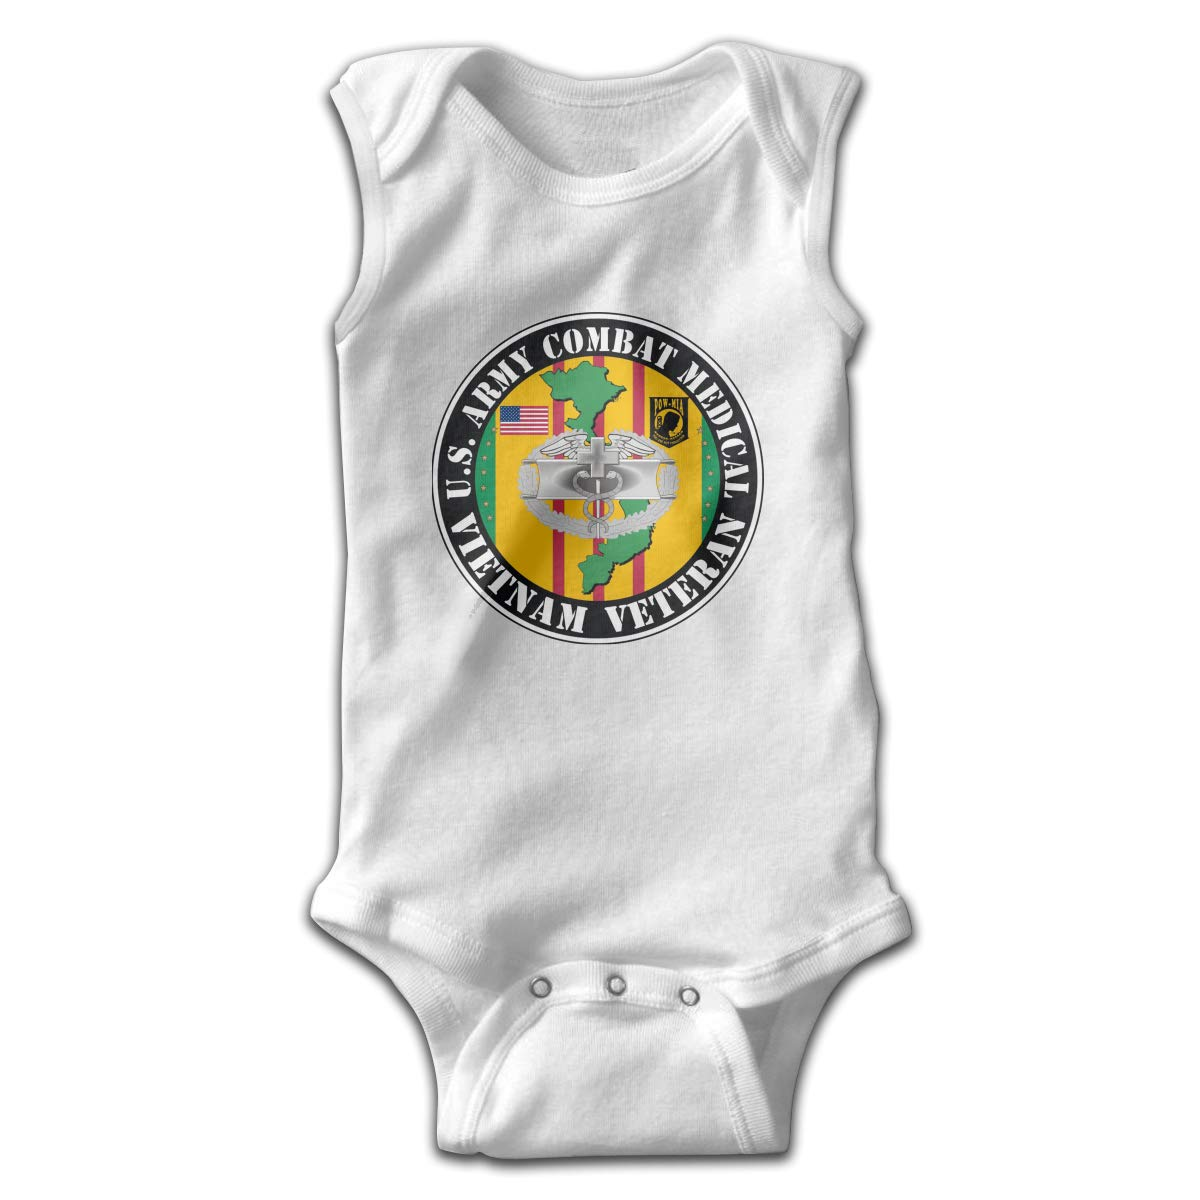 Army Combat Medical Vietnam Veteran Newborn Baby No Sleeve Bodysuit Romper Infant Summer Clothing Black Dfenere U.S